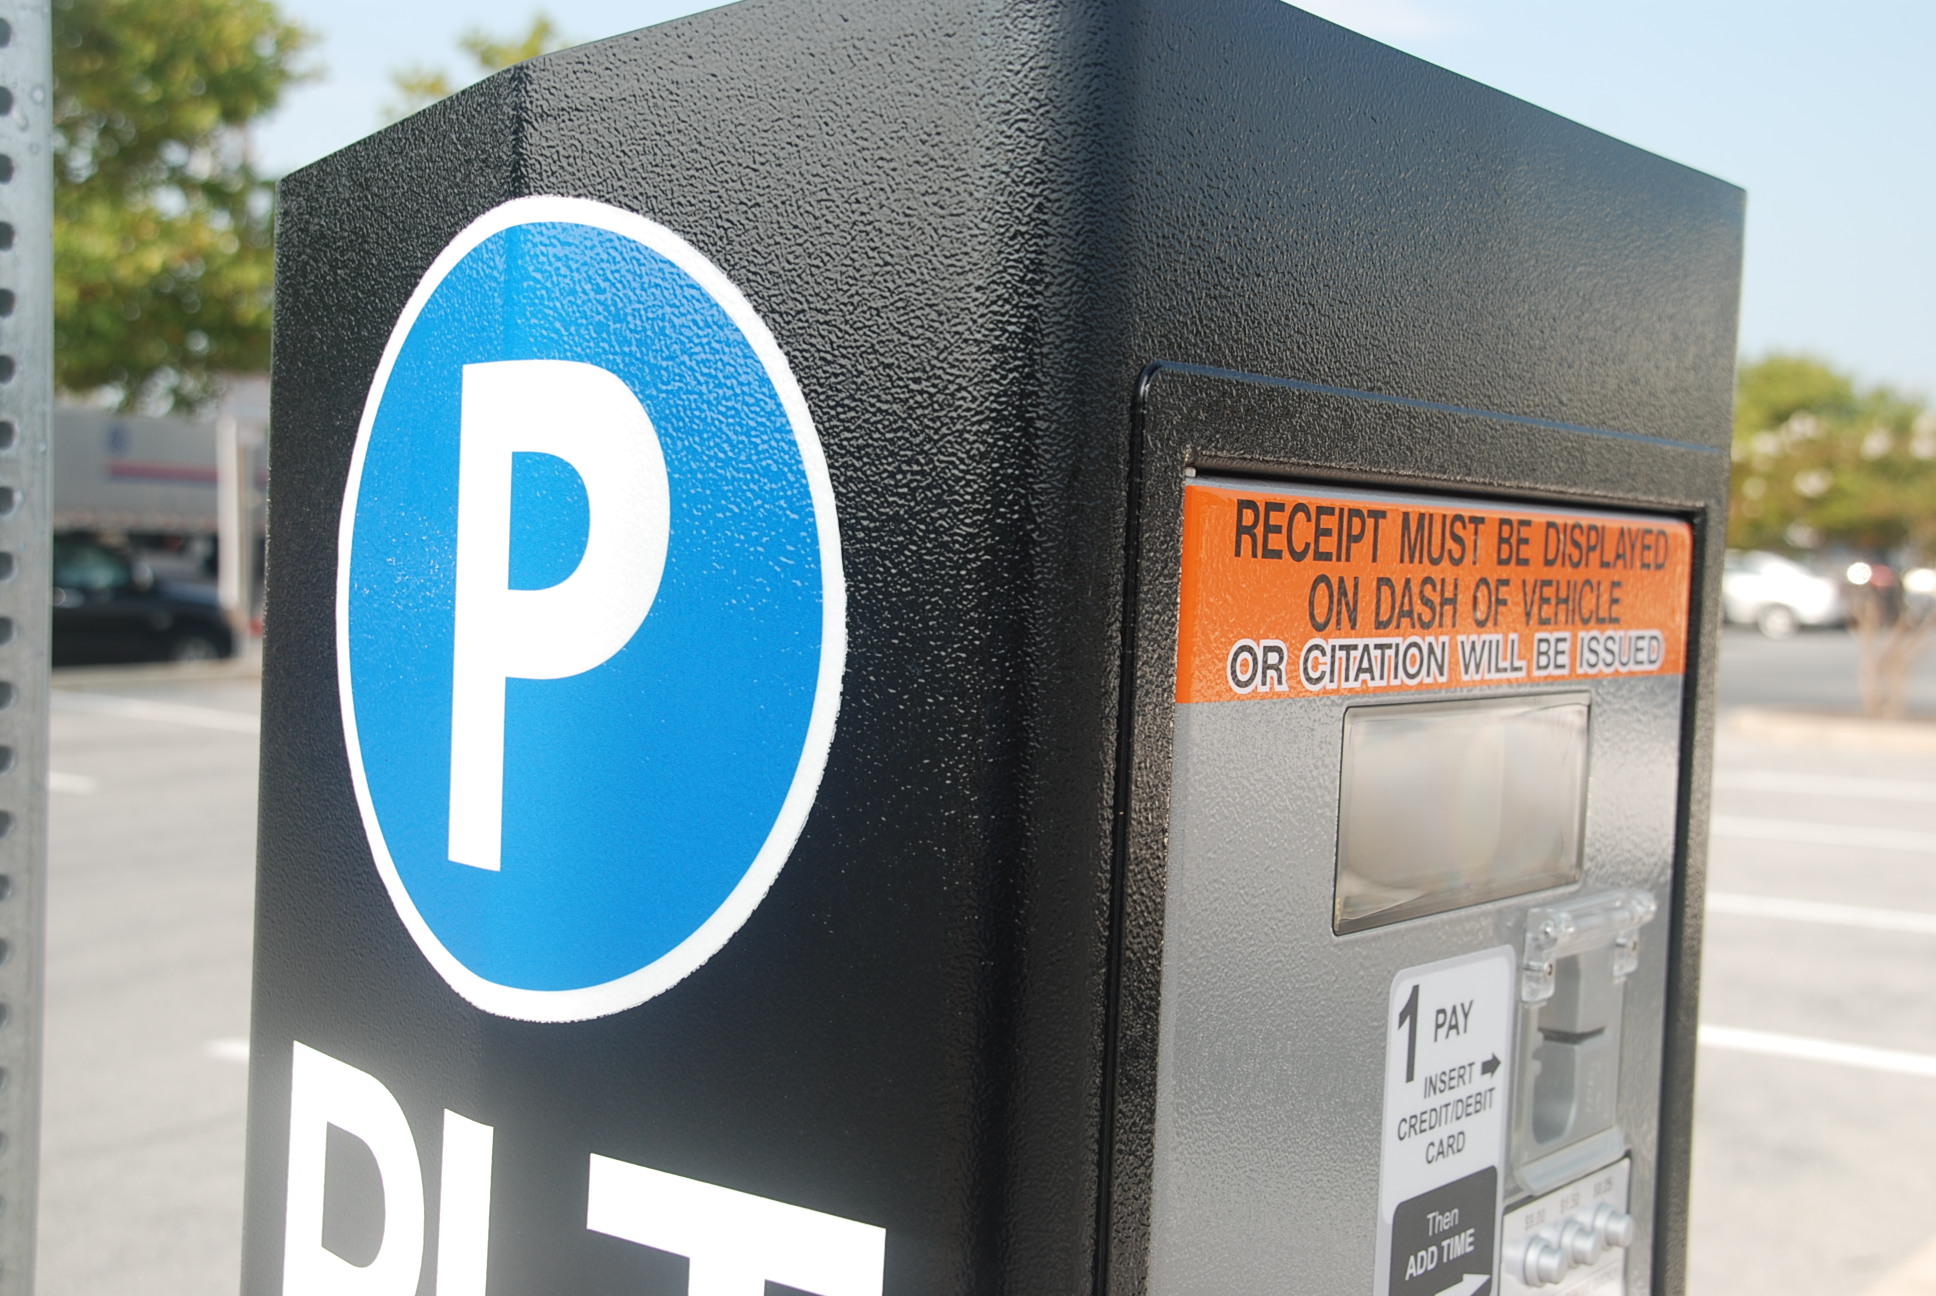 The City Council voted 6-0 this week to collect proposals from companies offering pay-by-phone parking systems to go along with the current Cale parking machines, which provide a receipt for users to display in their vehicles. File Photo